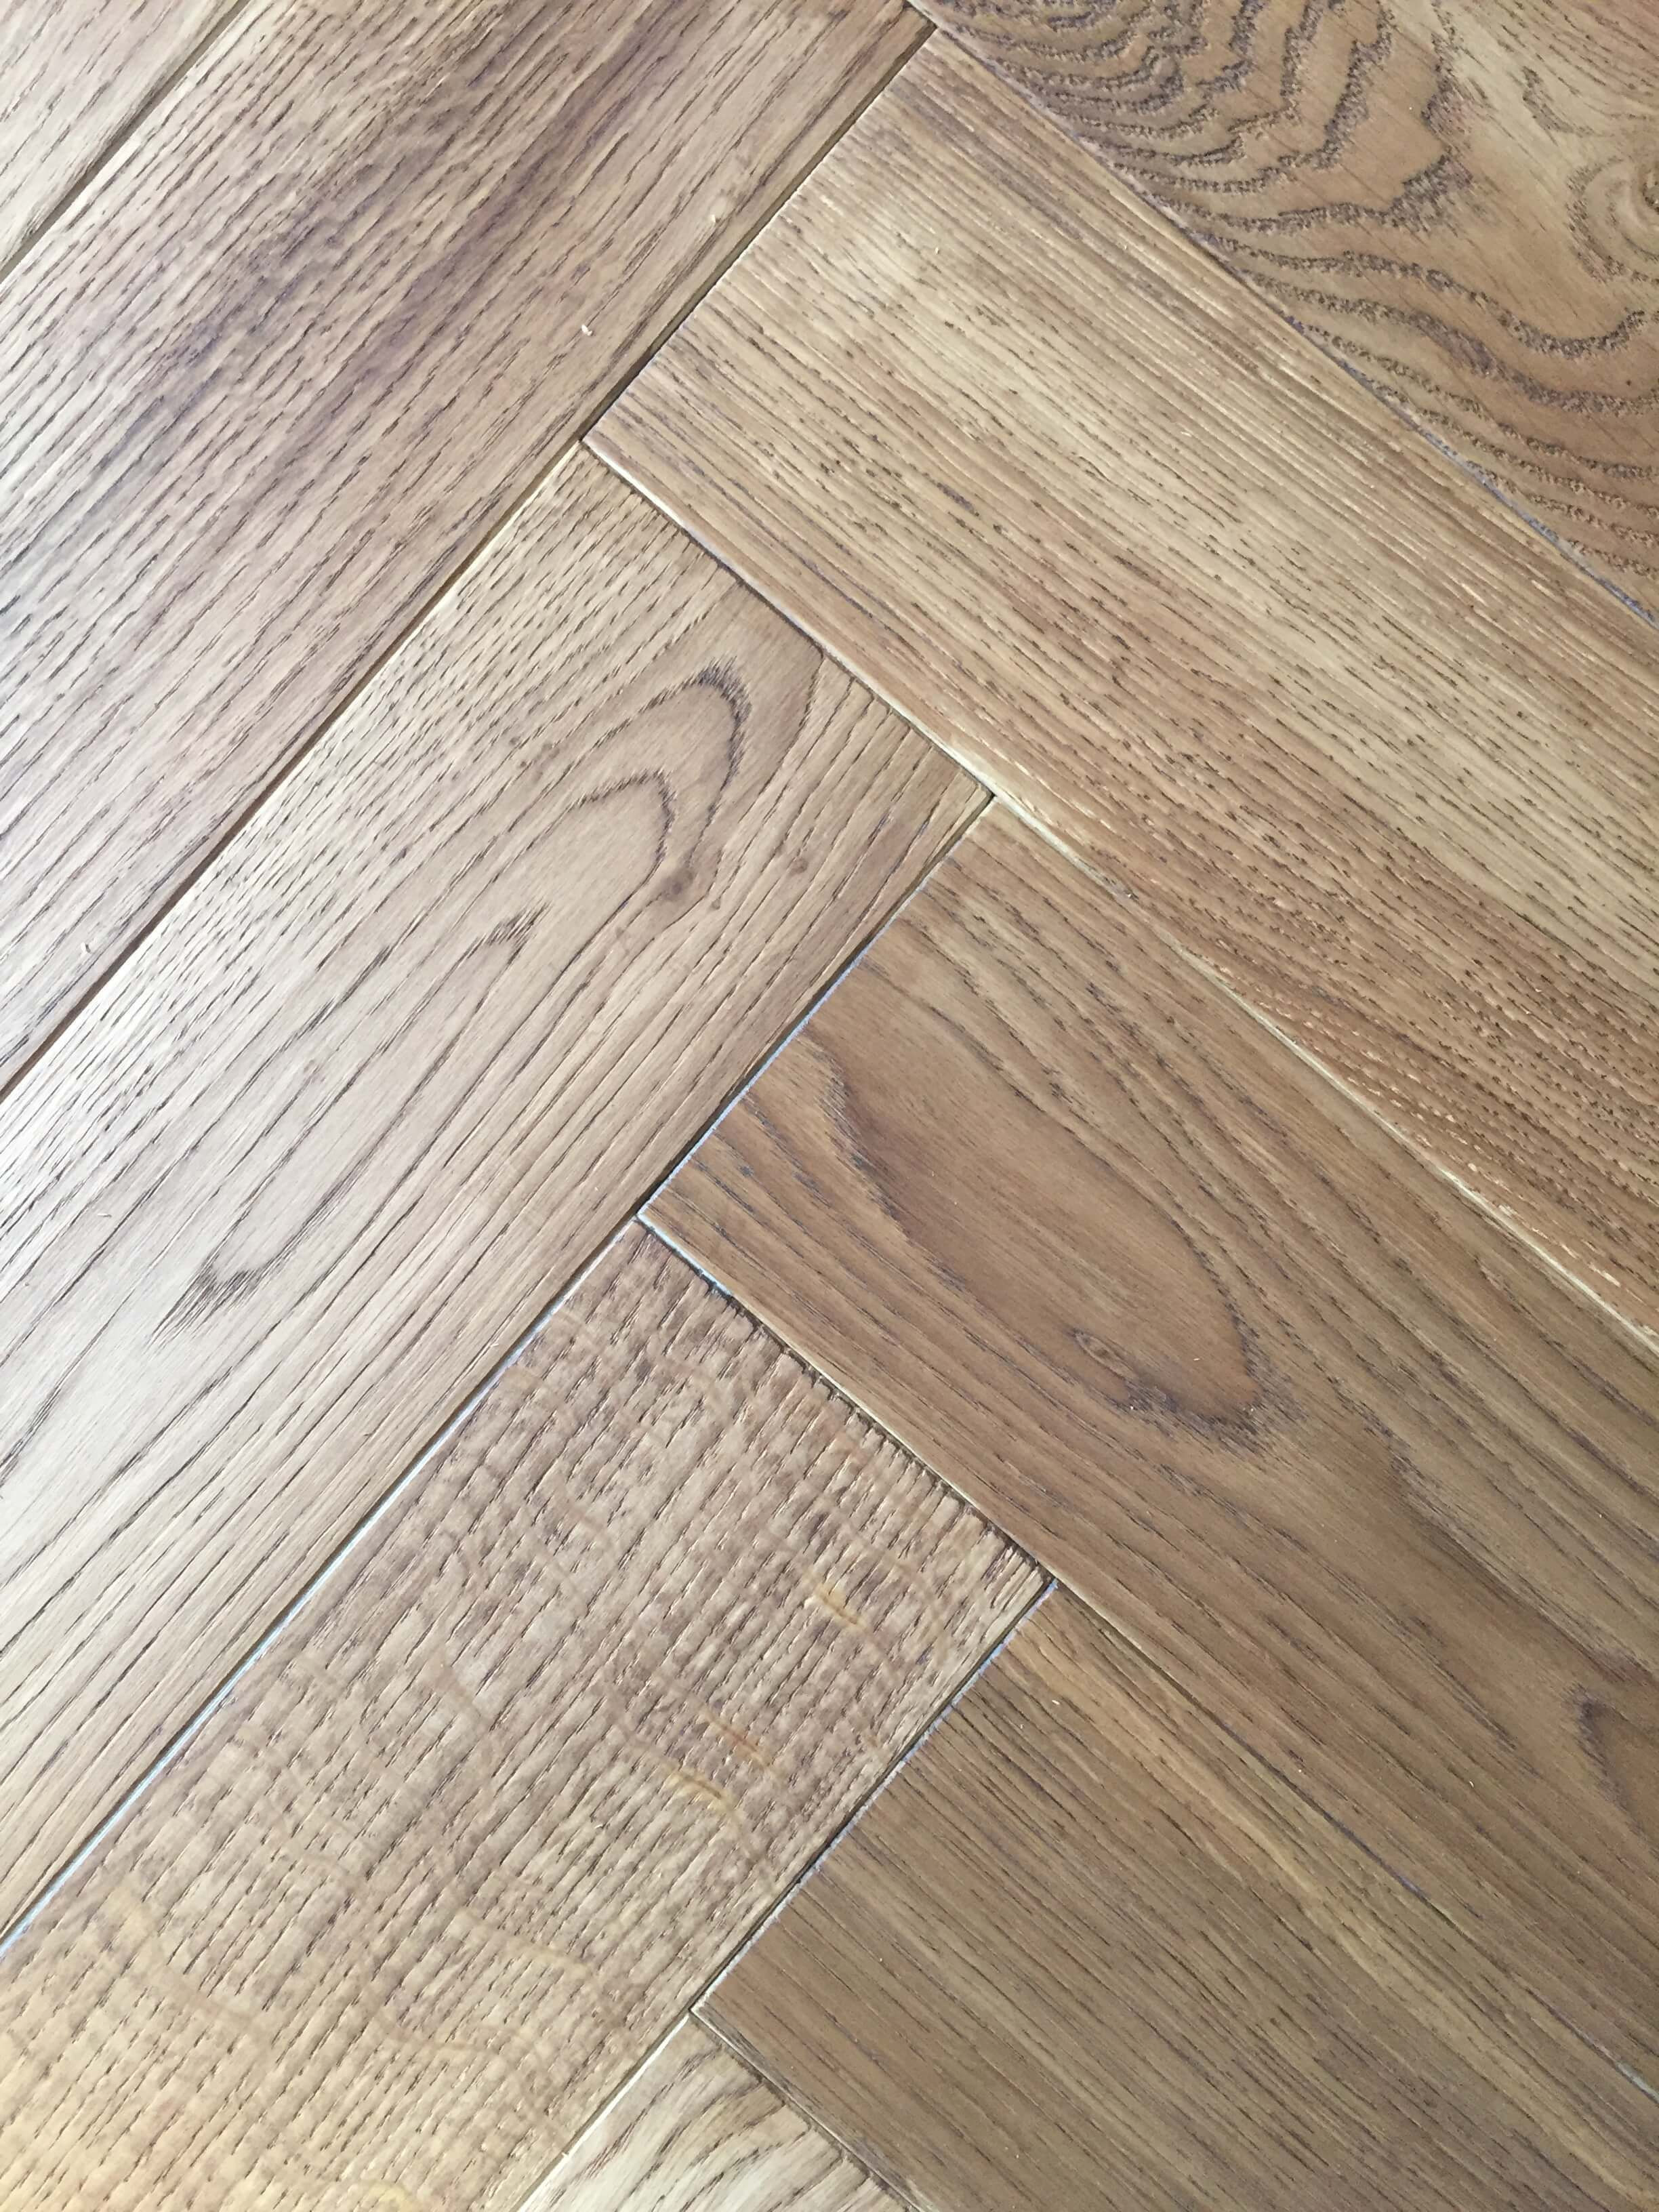 is laminate flooring better than hardwood of roll out laminate wood flooring bamboo vs hardwood flooring new intended for roll out laminate wood flooring bamboo vs hardwood flooring new hotel od barcelona projekt parklex